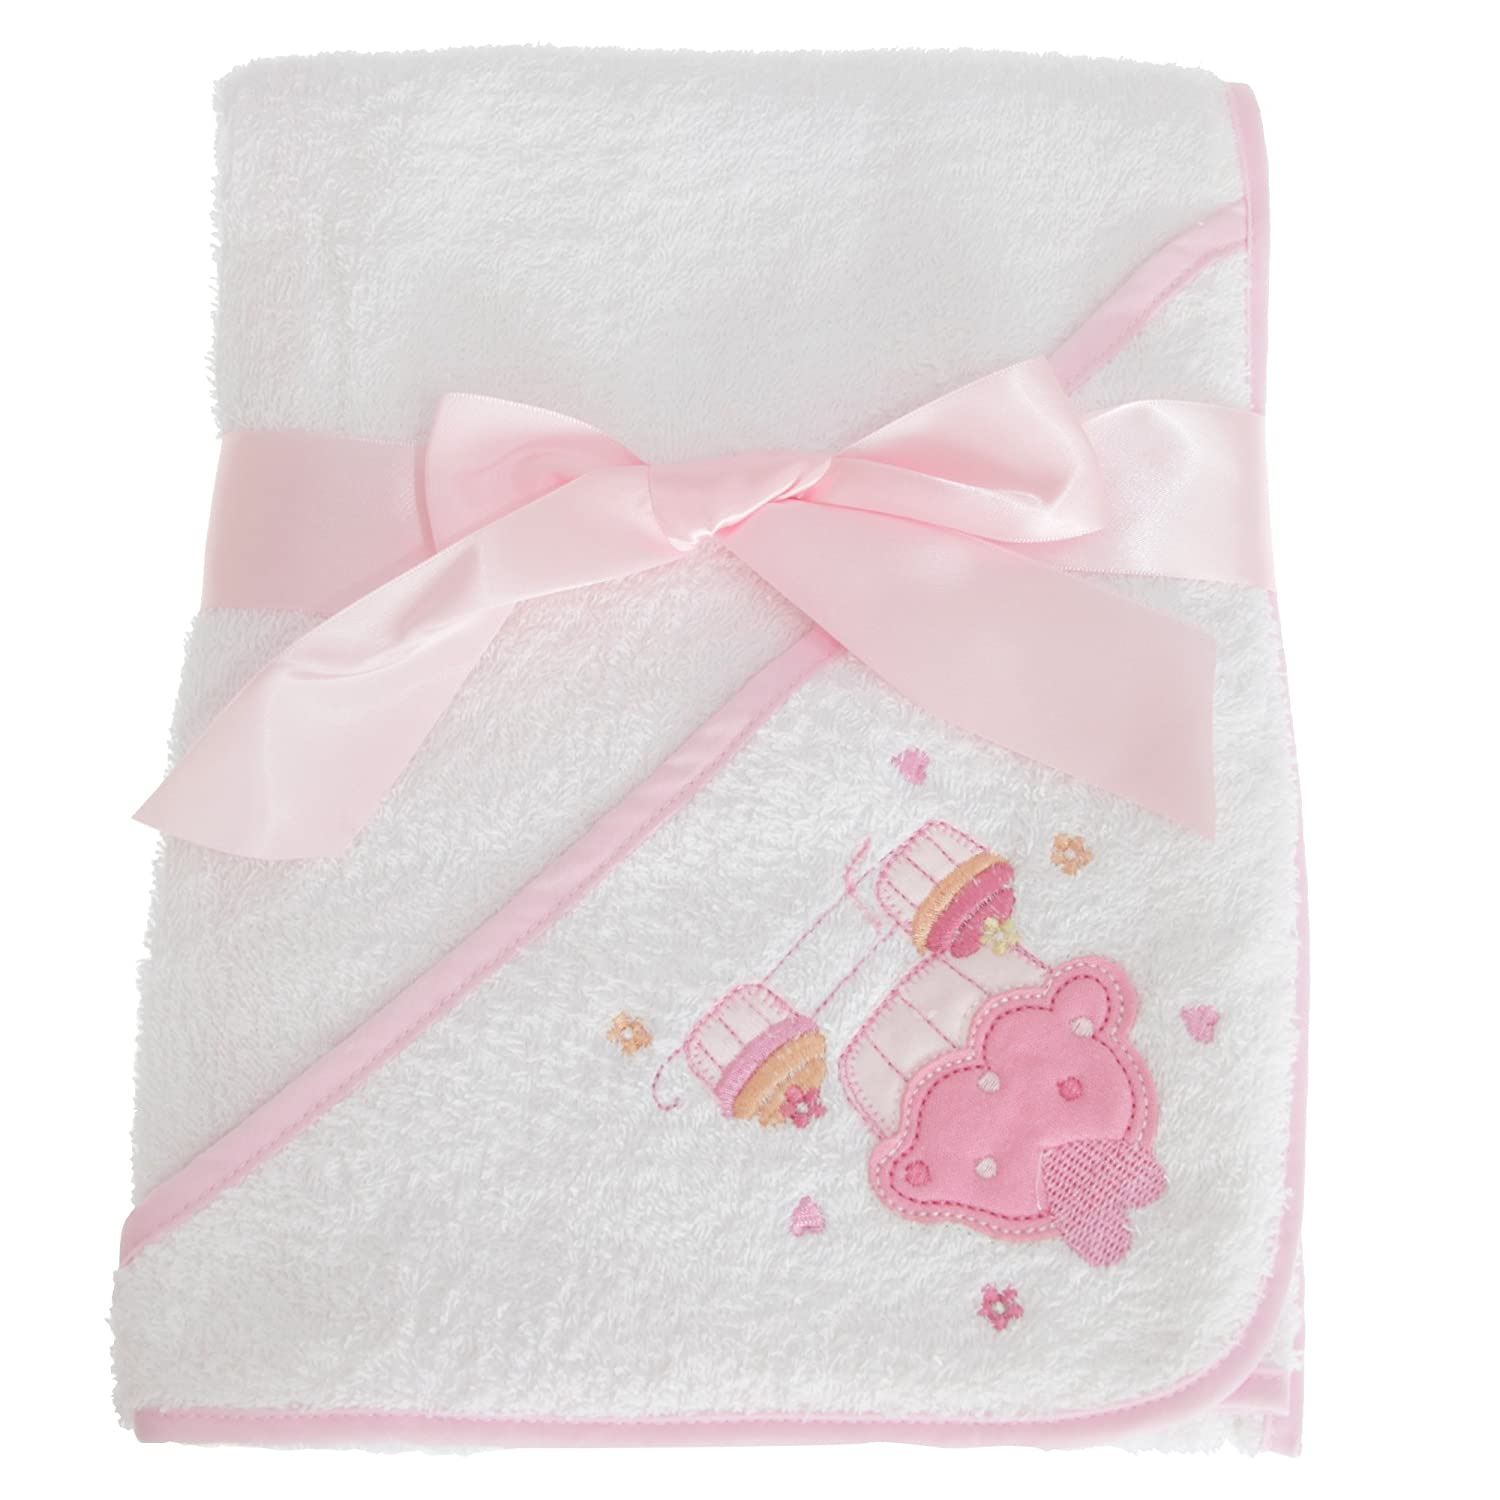 Snuggle Baby Hooded Towel For Someone Special With Cupcake Design (30 x 30 Inch) (White/Pink) UTBABY1485_1